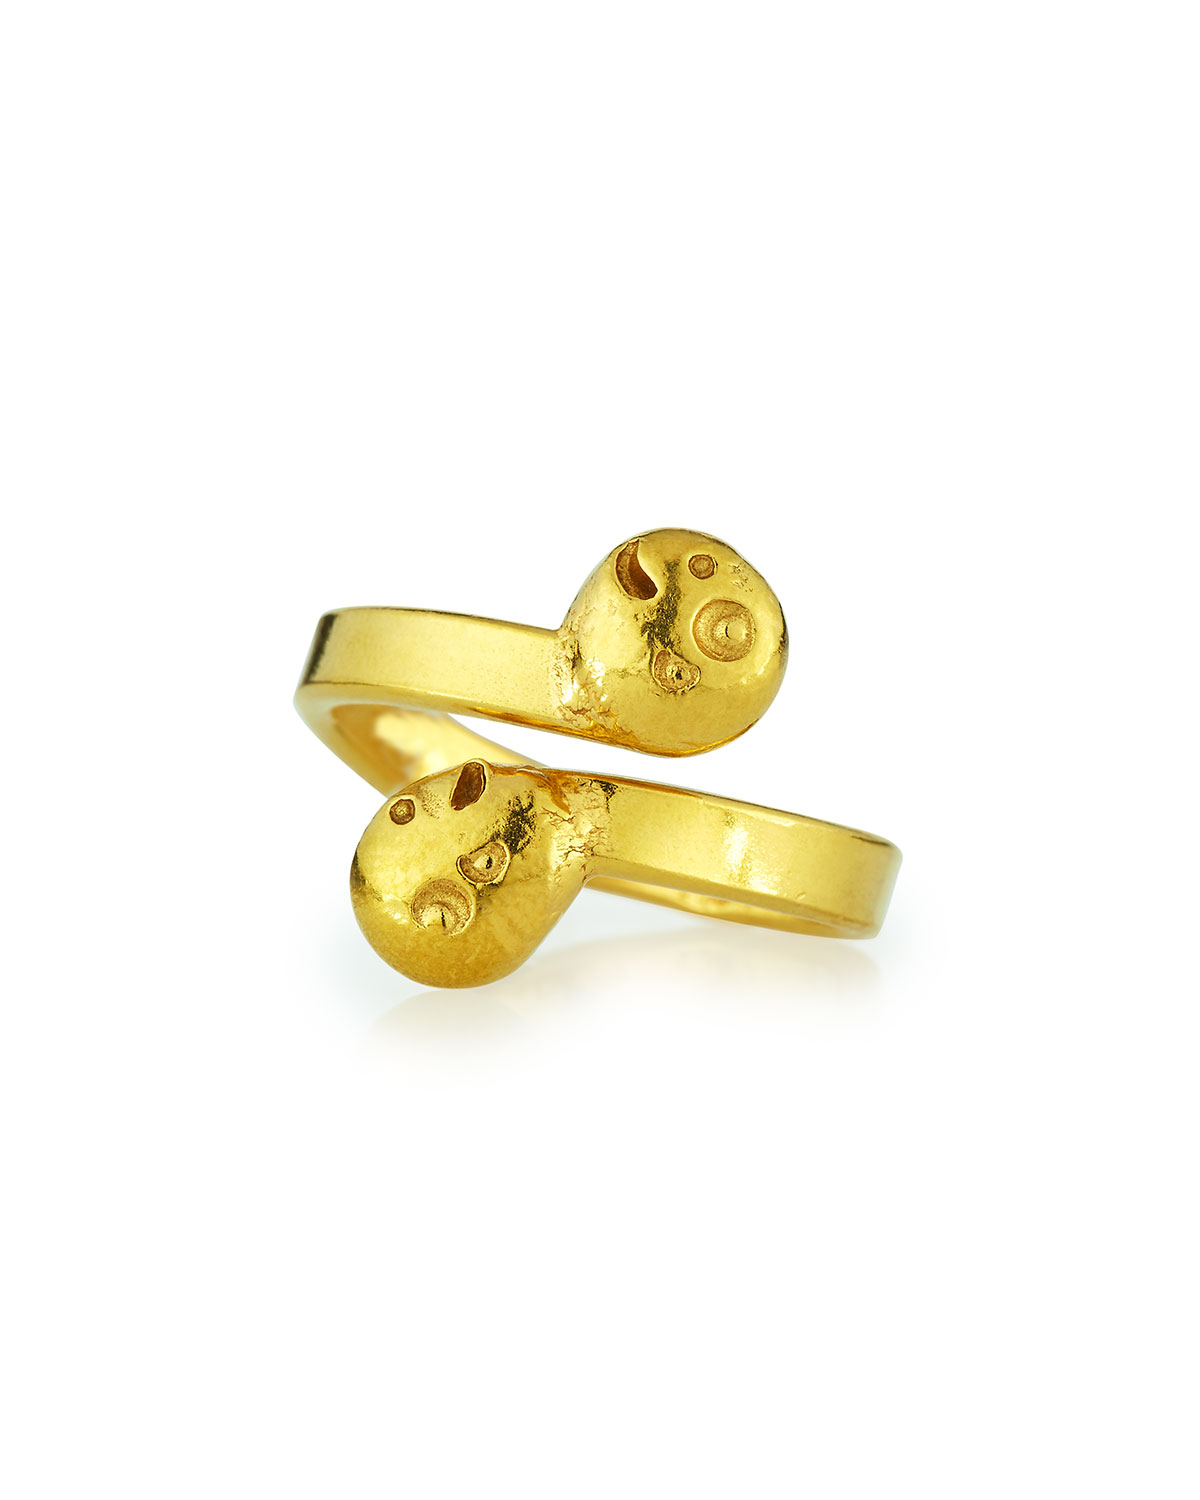 22K Gold Carved Bypass Ring